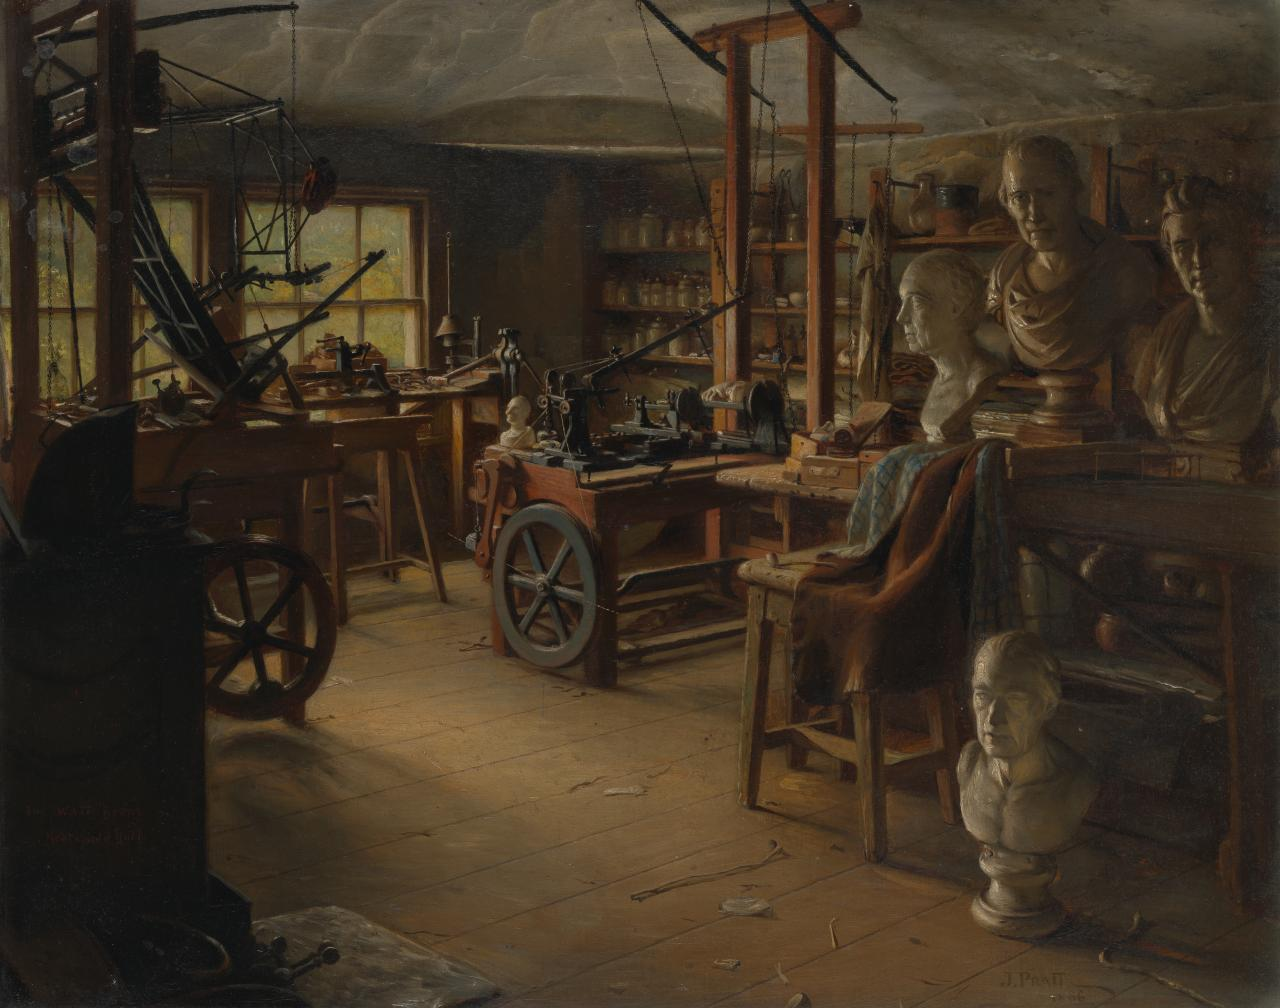 James Watt's workshop